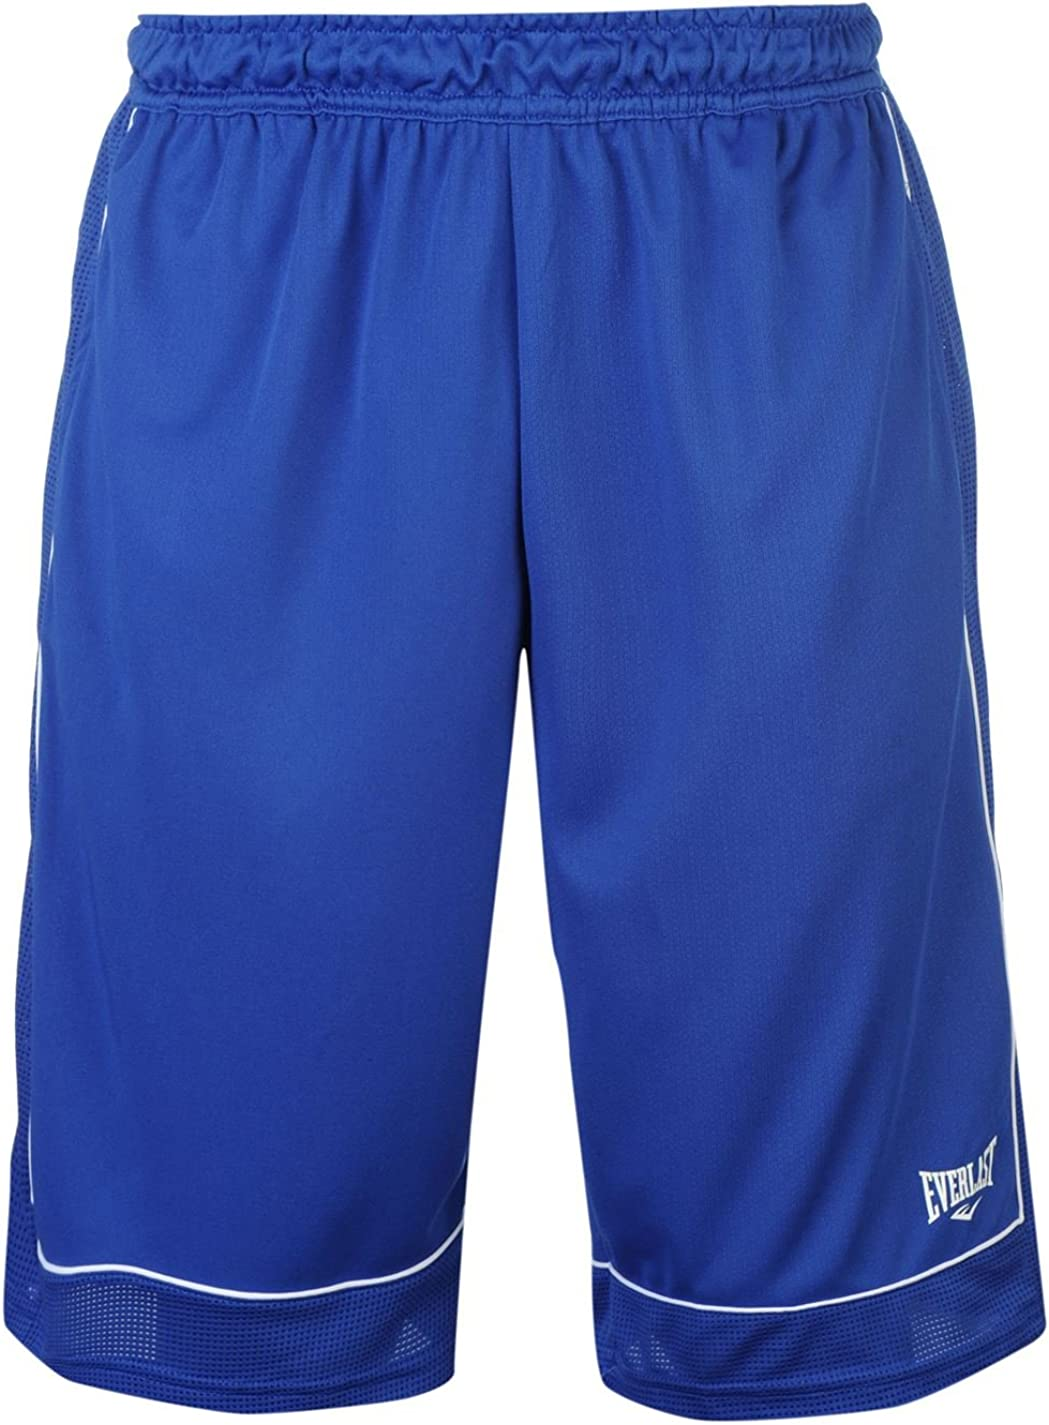 Everlast Sale special Ranking TOP4 price Mens Basketball Shorts Bottoms Waist Sports Elasticated